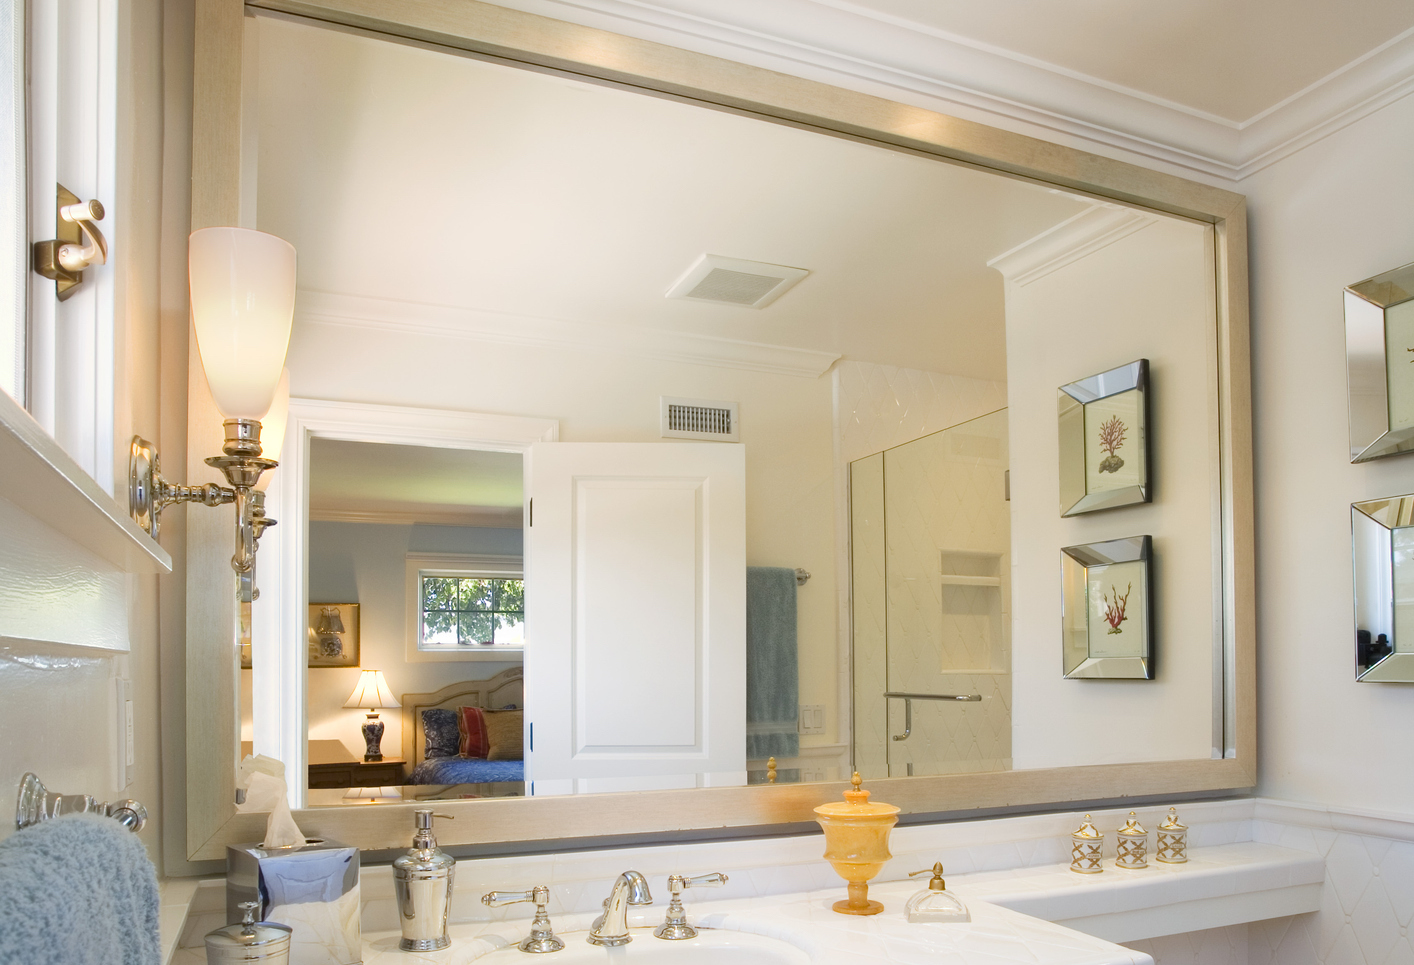 Gin is the secret to clean streak free mirrors cleaning for How to clean bathroom mirror without streaks